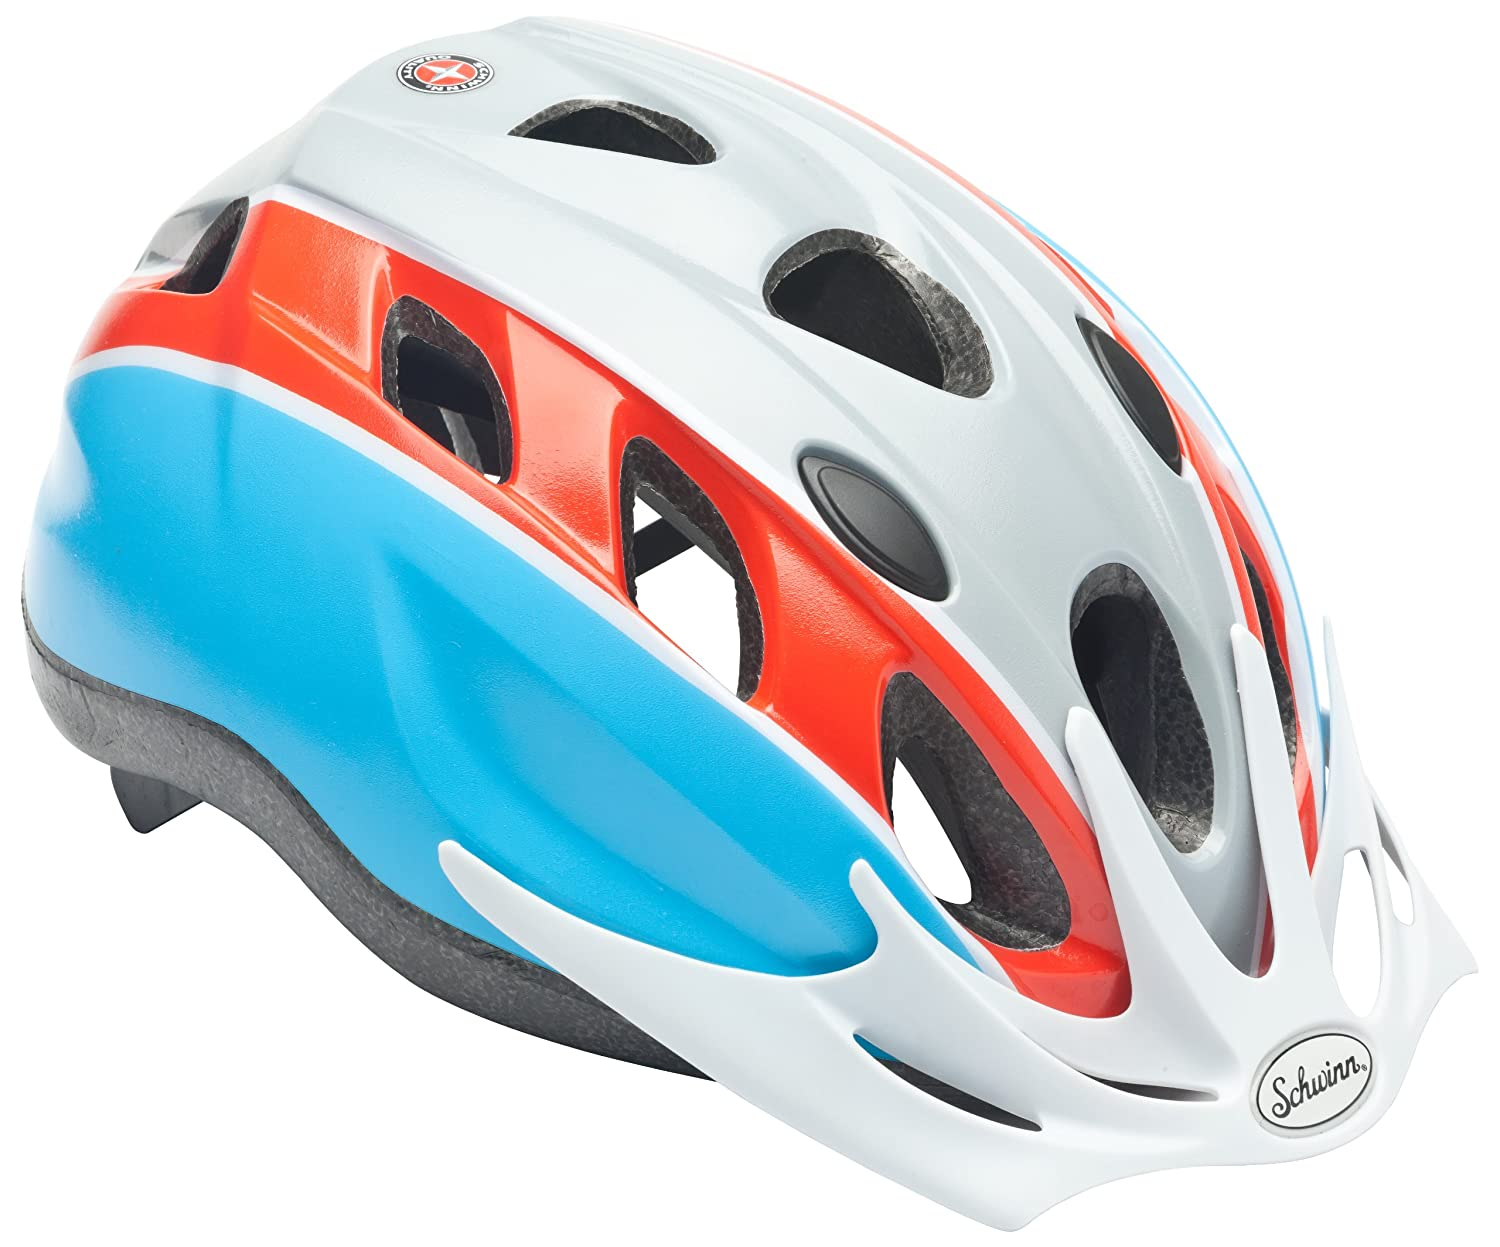 White half apron walmart - You Can Also Pick Up Some Bargain Priced Helmets At Walmart Free Shipping With 35 Purchase Or Choose In Store Pickup